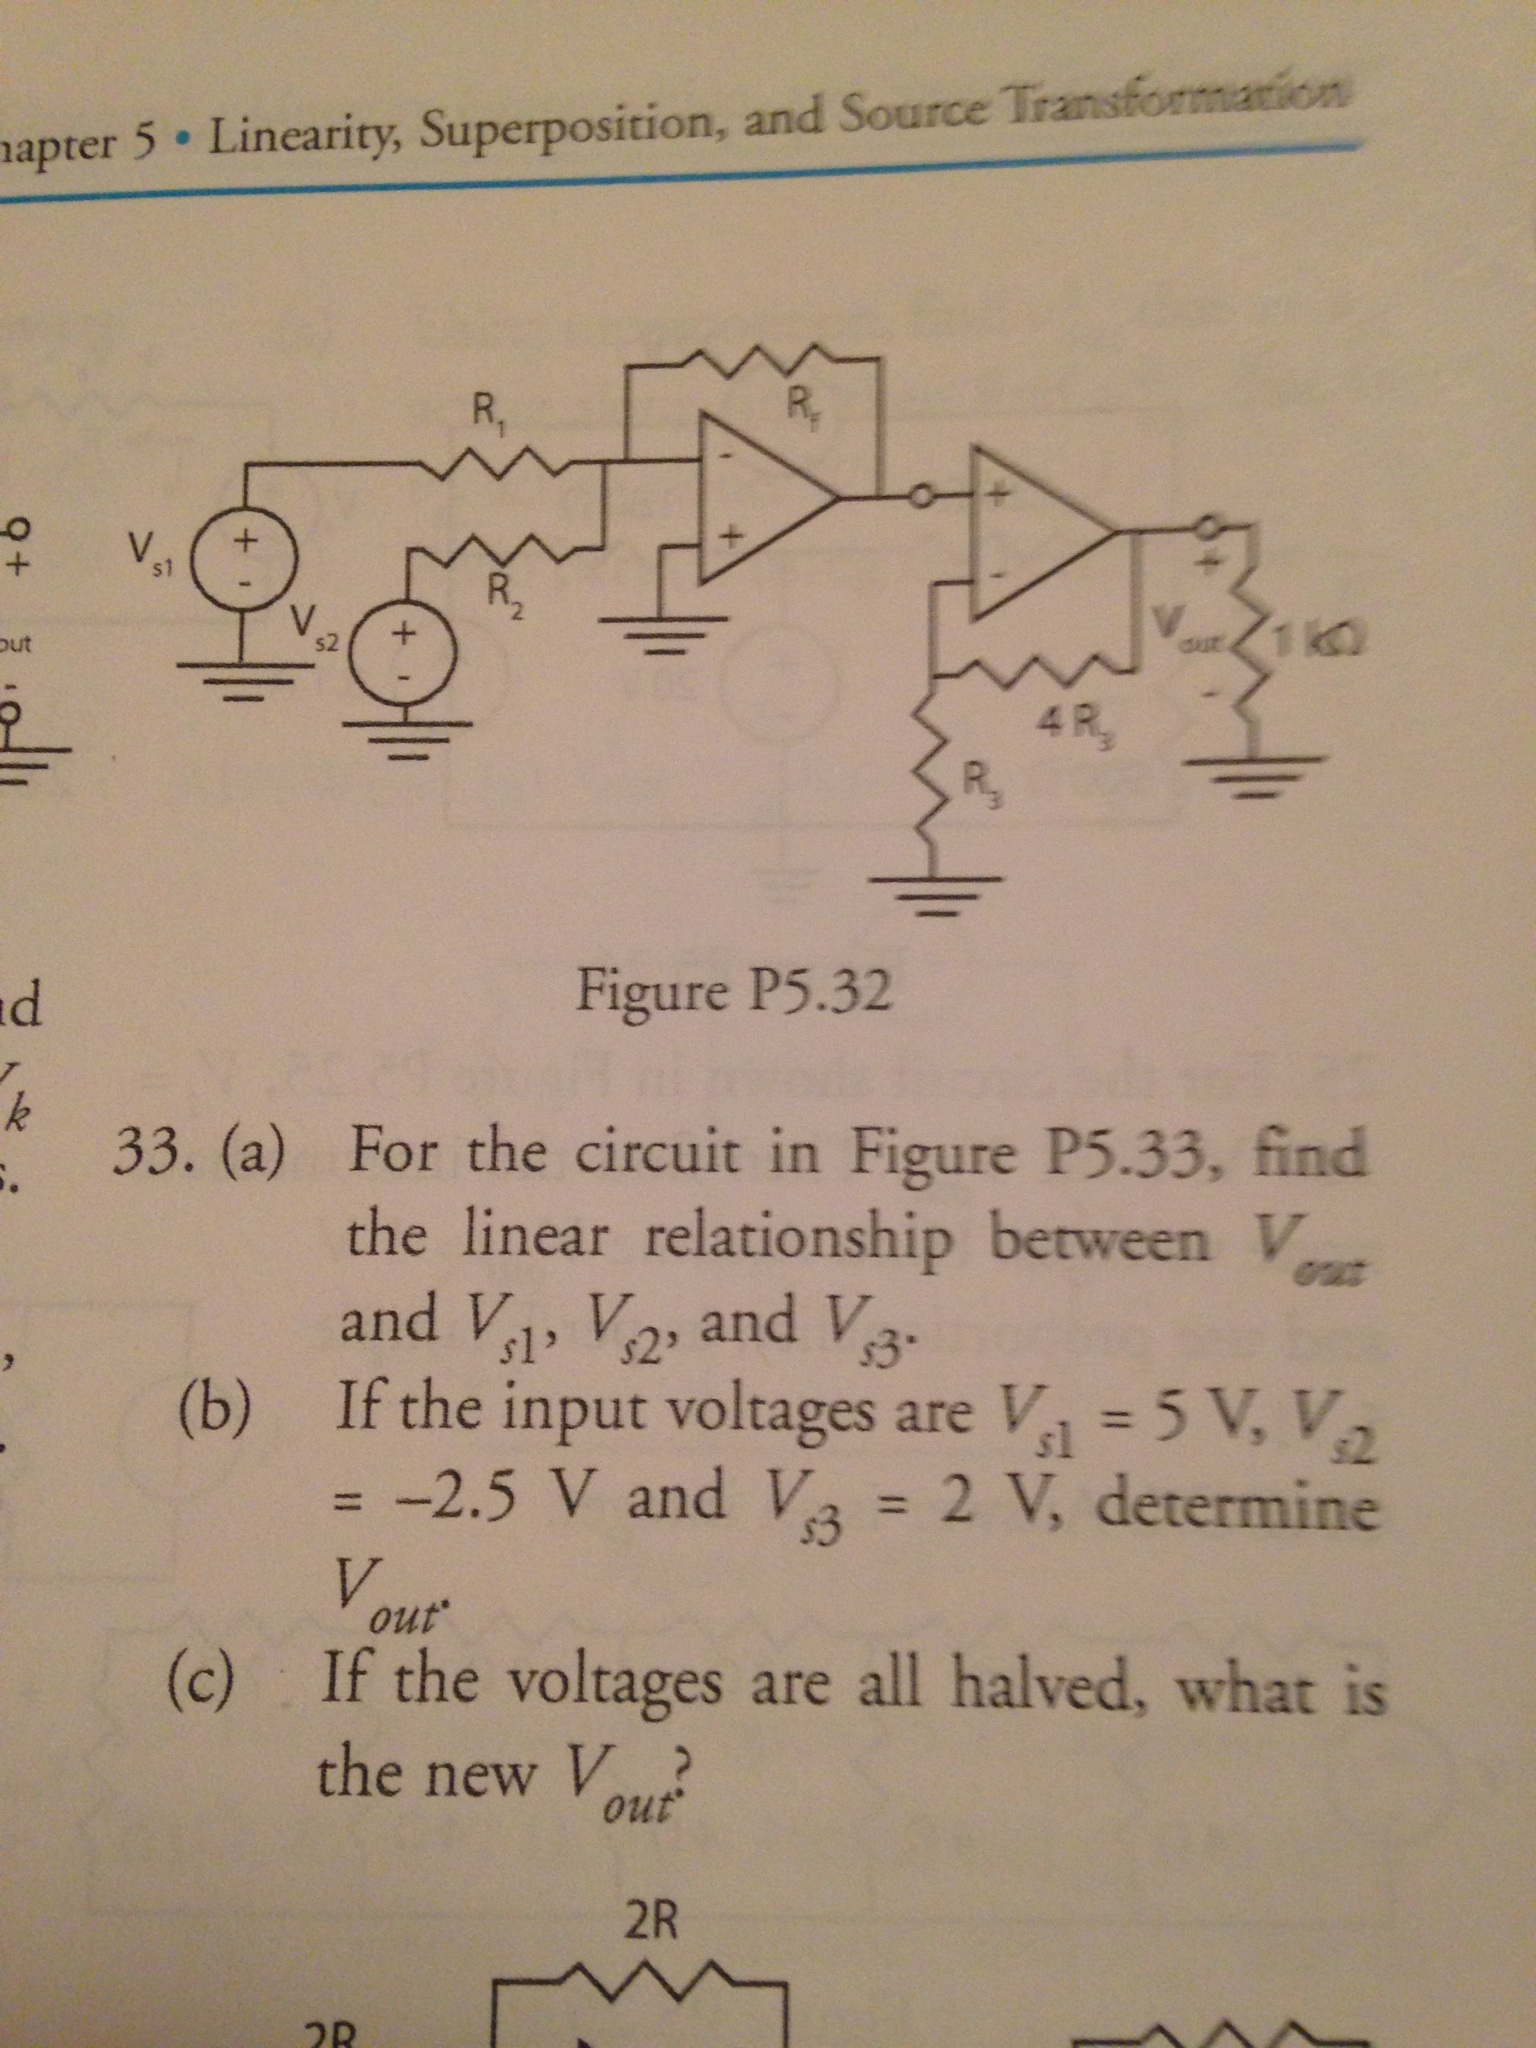 For the circuit in Figure P5.32 of the book, if R1